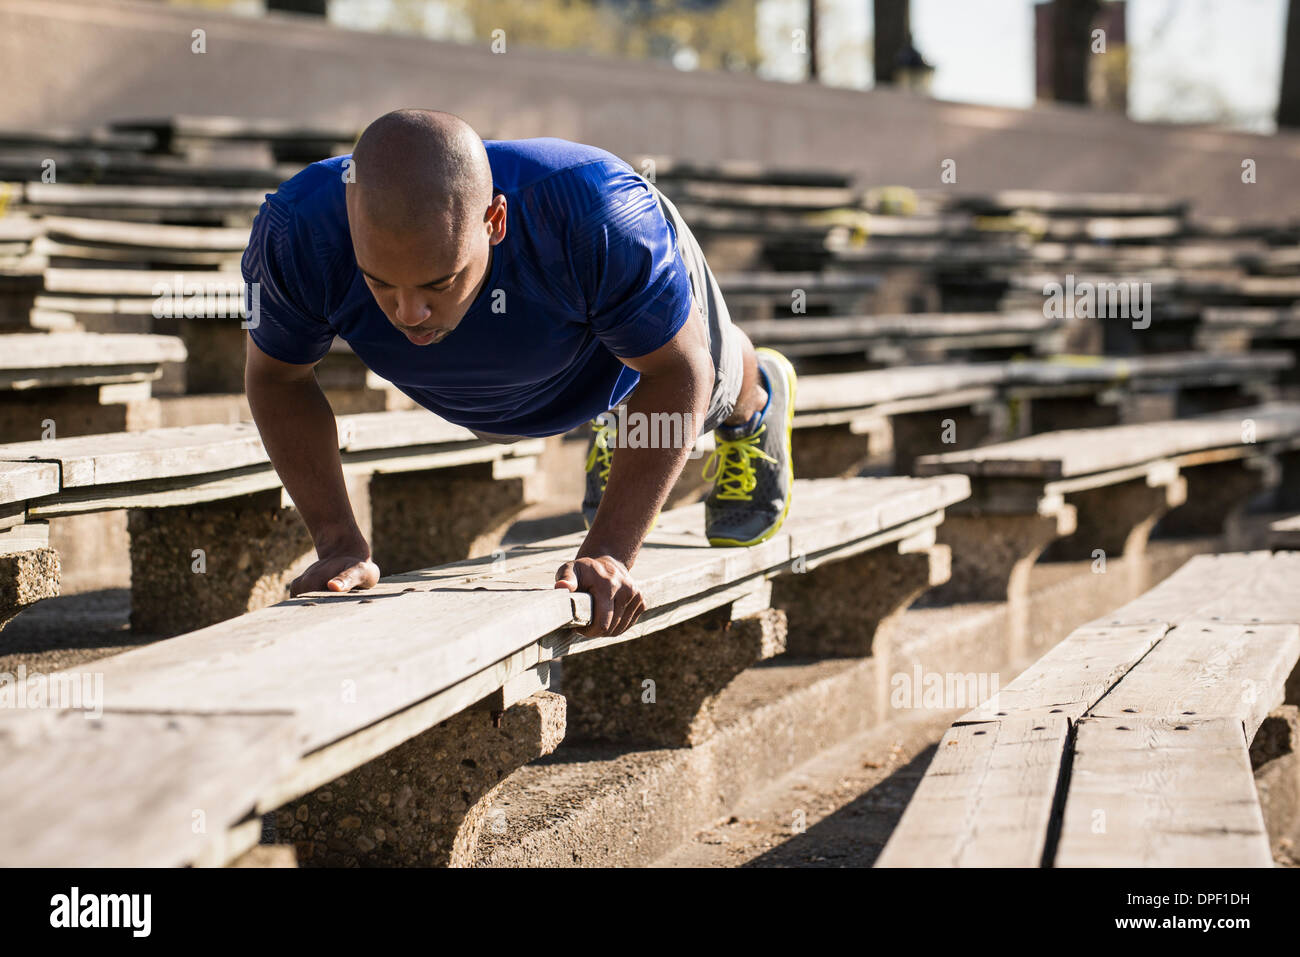 Man doing push ups on bench - Stock Image